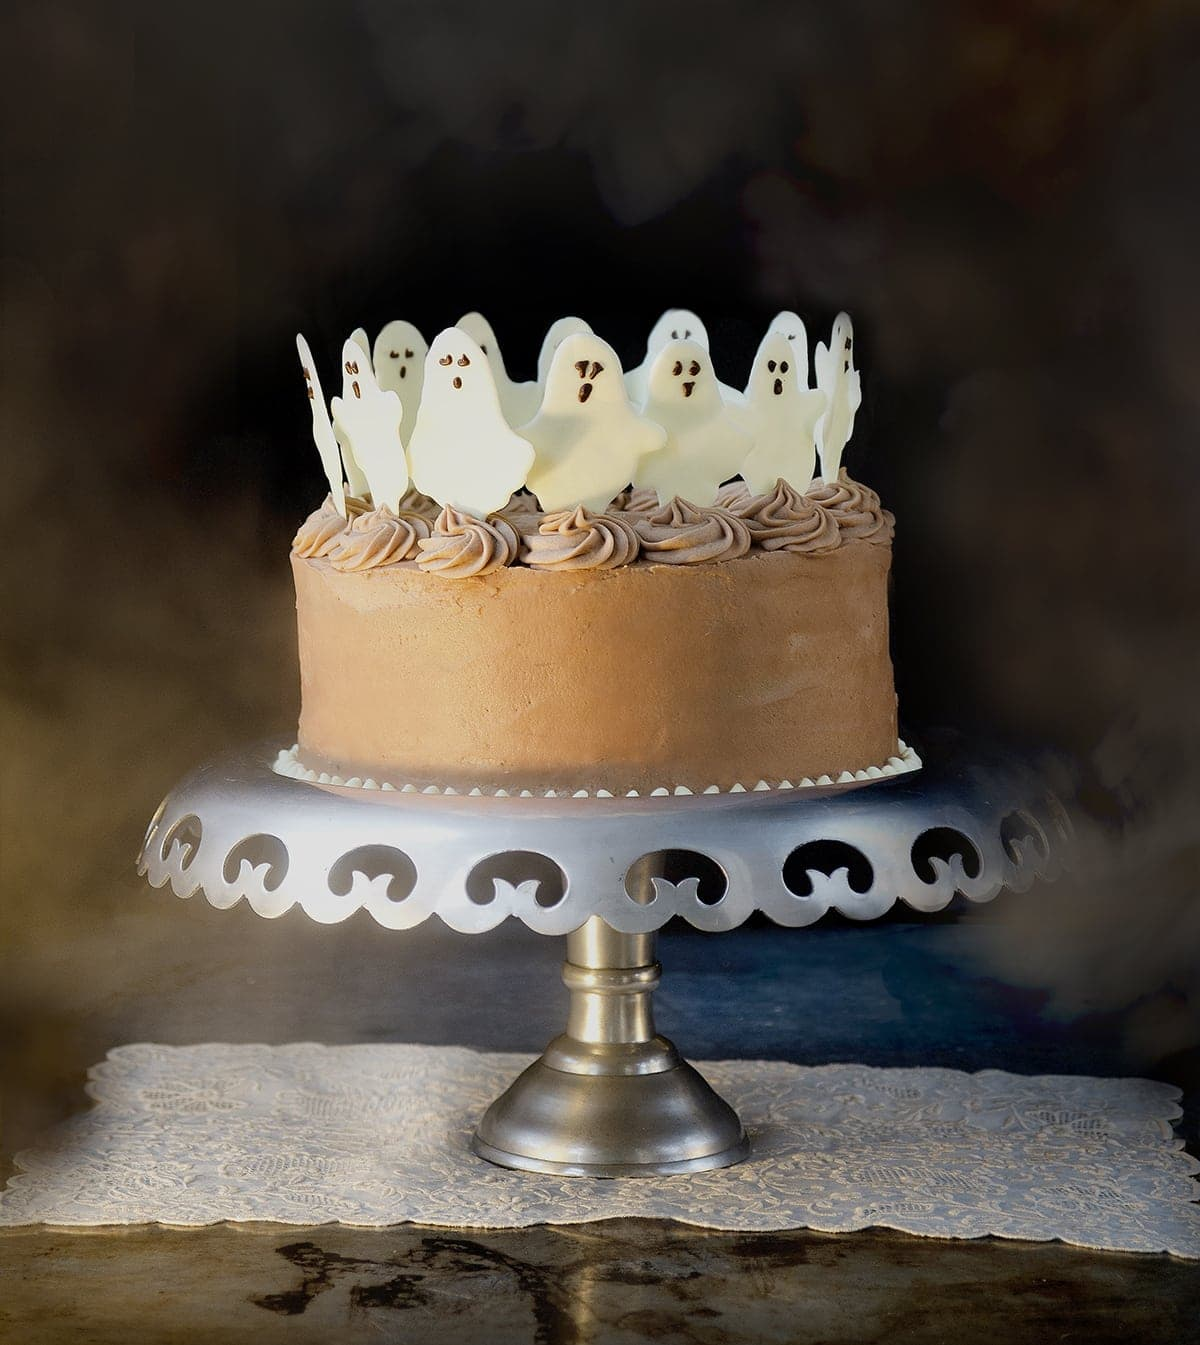 Dancing Ghosts Chocolate Coconut Cake Web - Dancing Ghosts Chocolate Coconut Cake